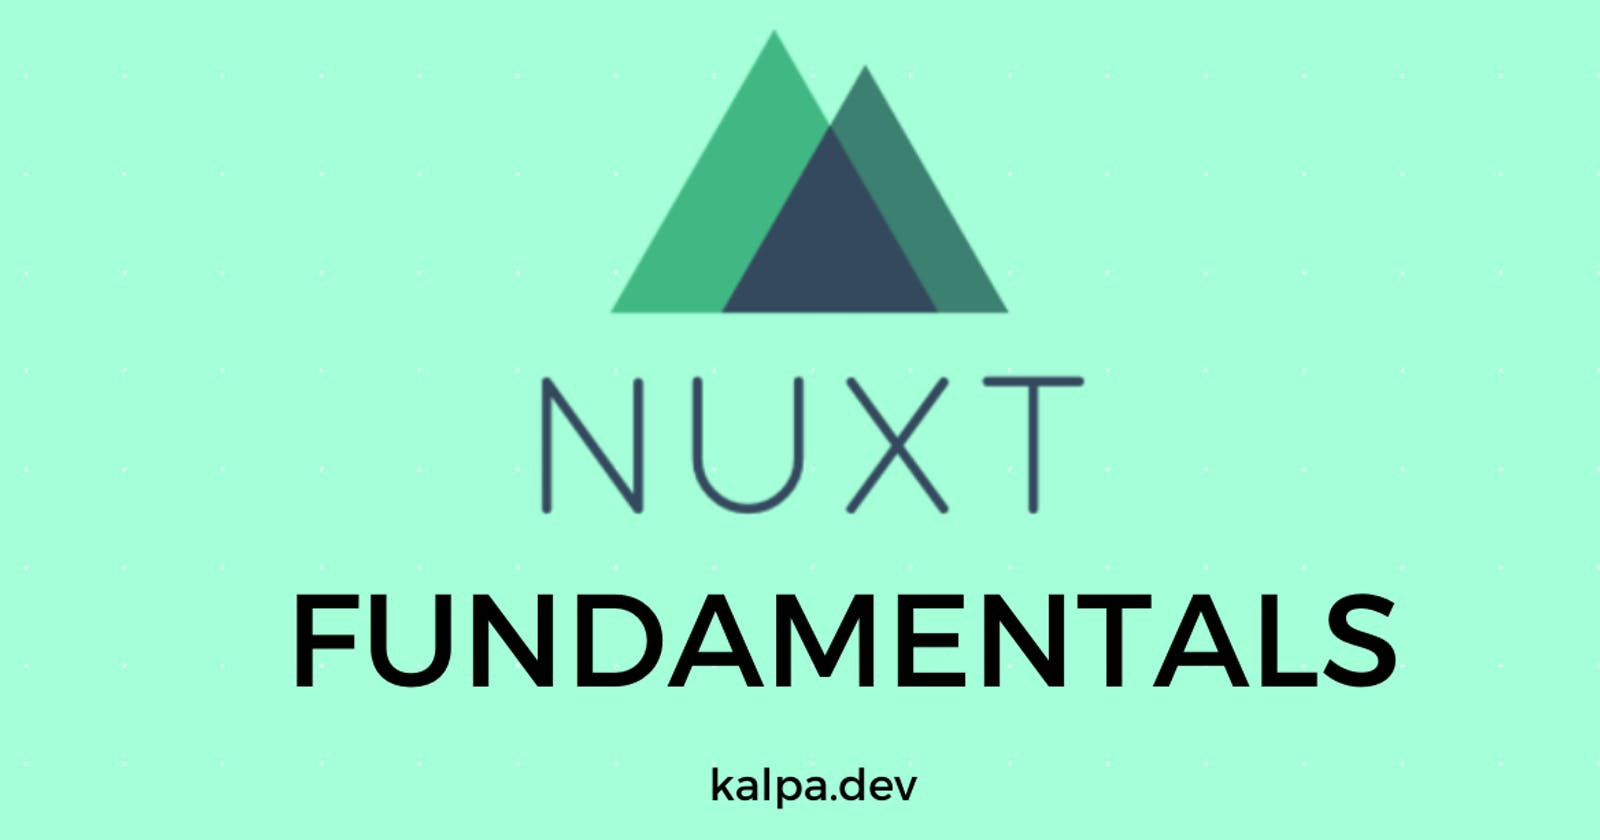 Nuxtjs Fundamentals: Deploying a static site